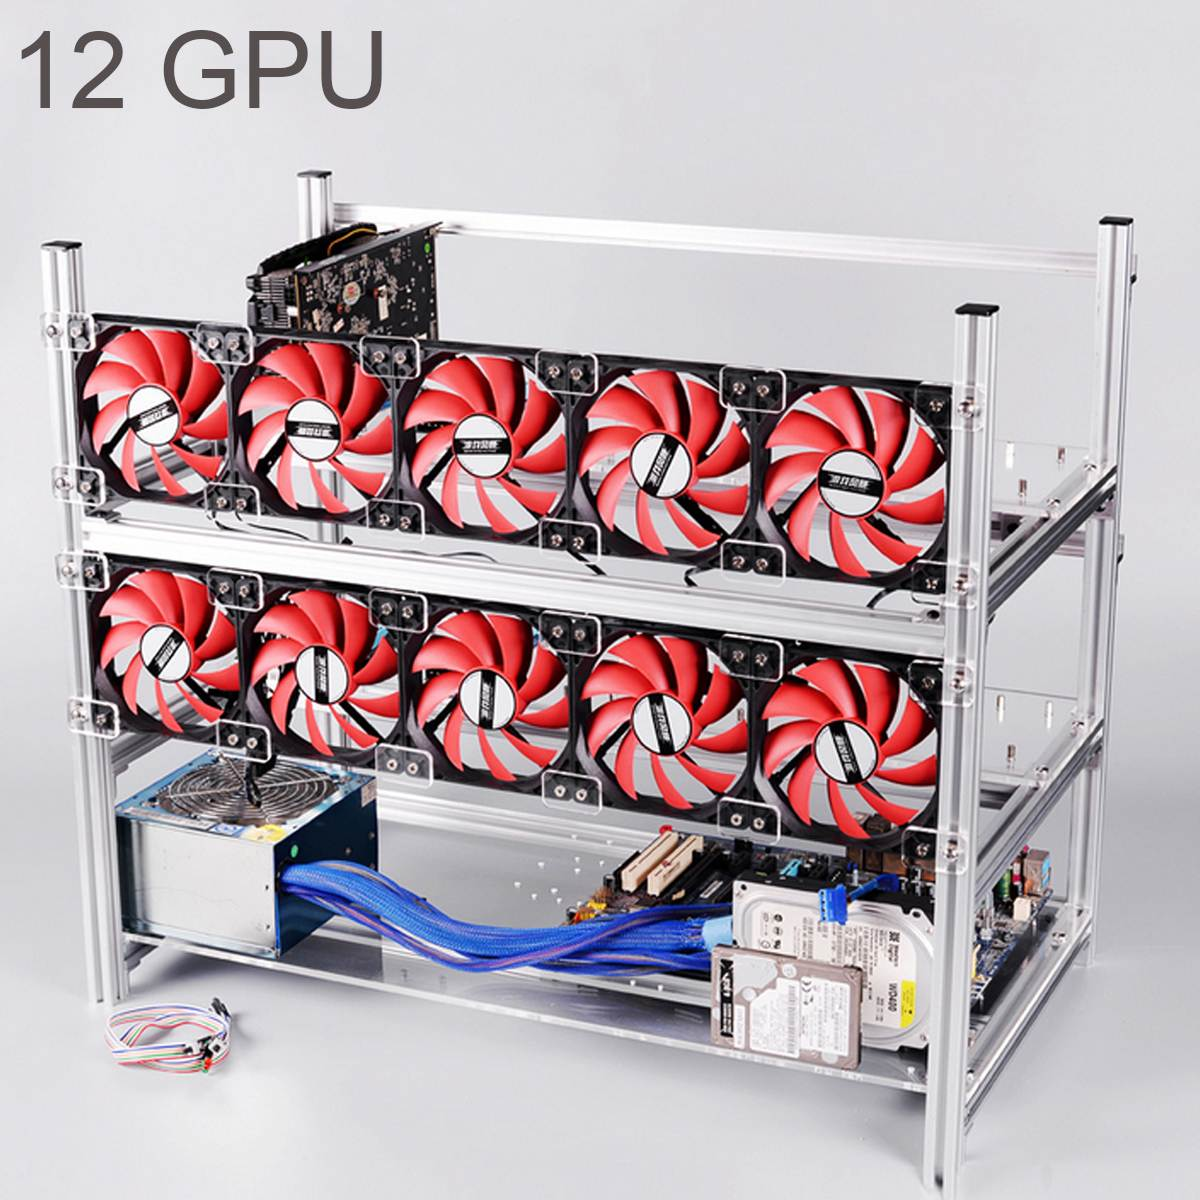 Aluminum Open Air Mining Rig Stackable Frame Case For 12 GPU ETH BTC Ethereum New Computer Mining Case Frame Server Chassis new 4u industrial computer case parkson 4u server computer case huntkey baisheng s400 4u standard computer case